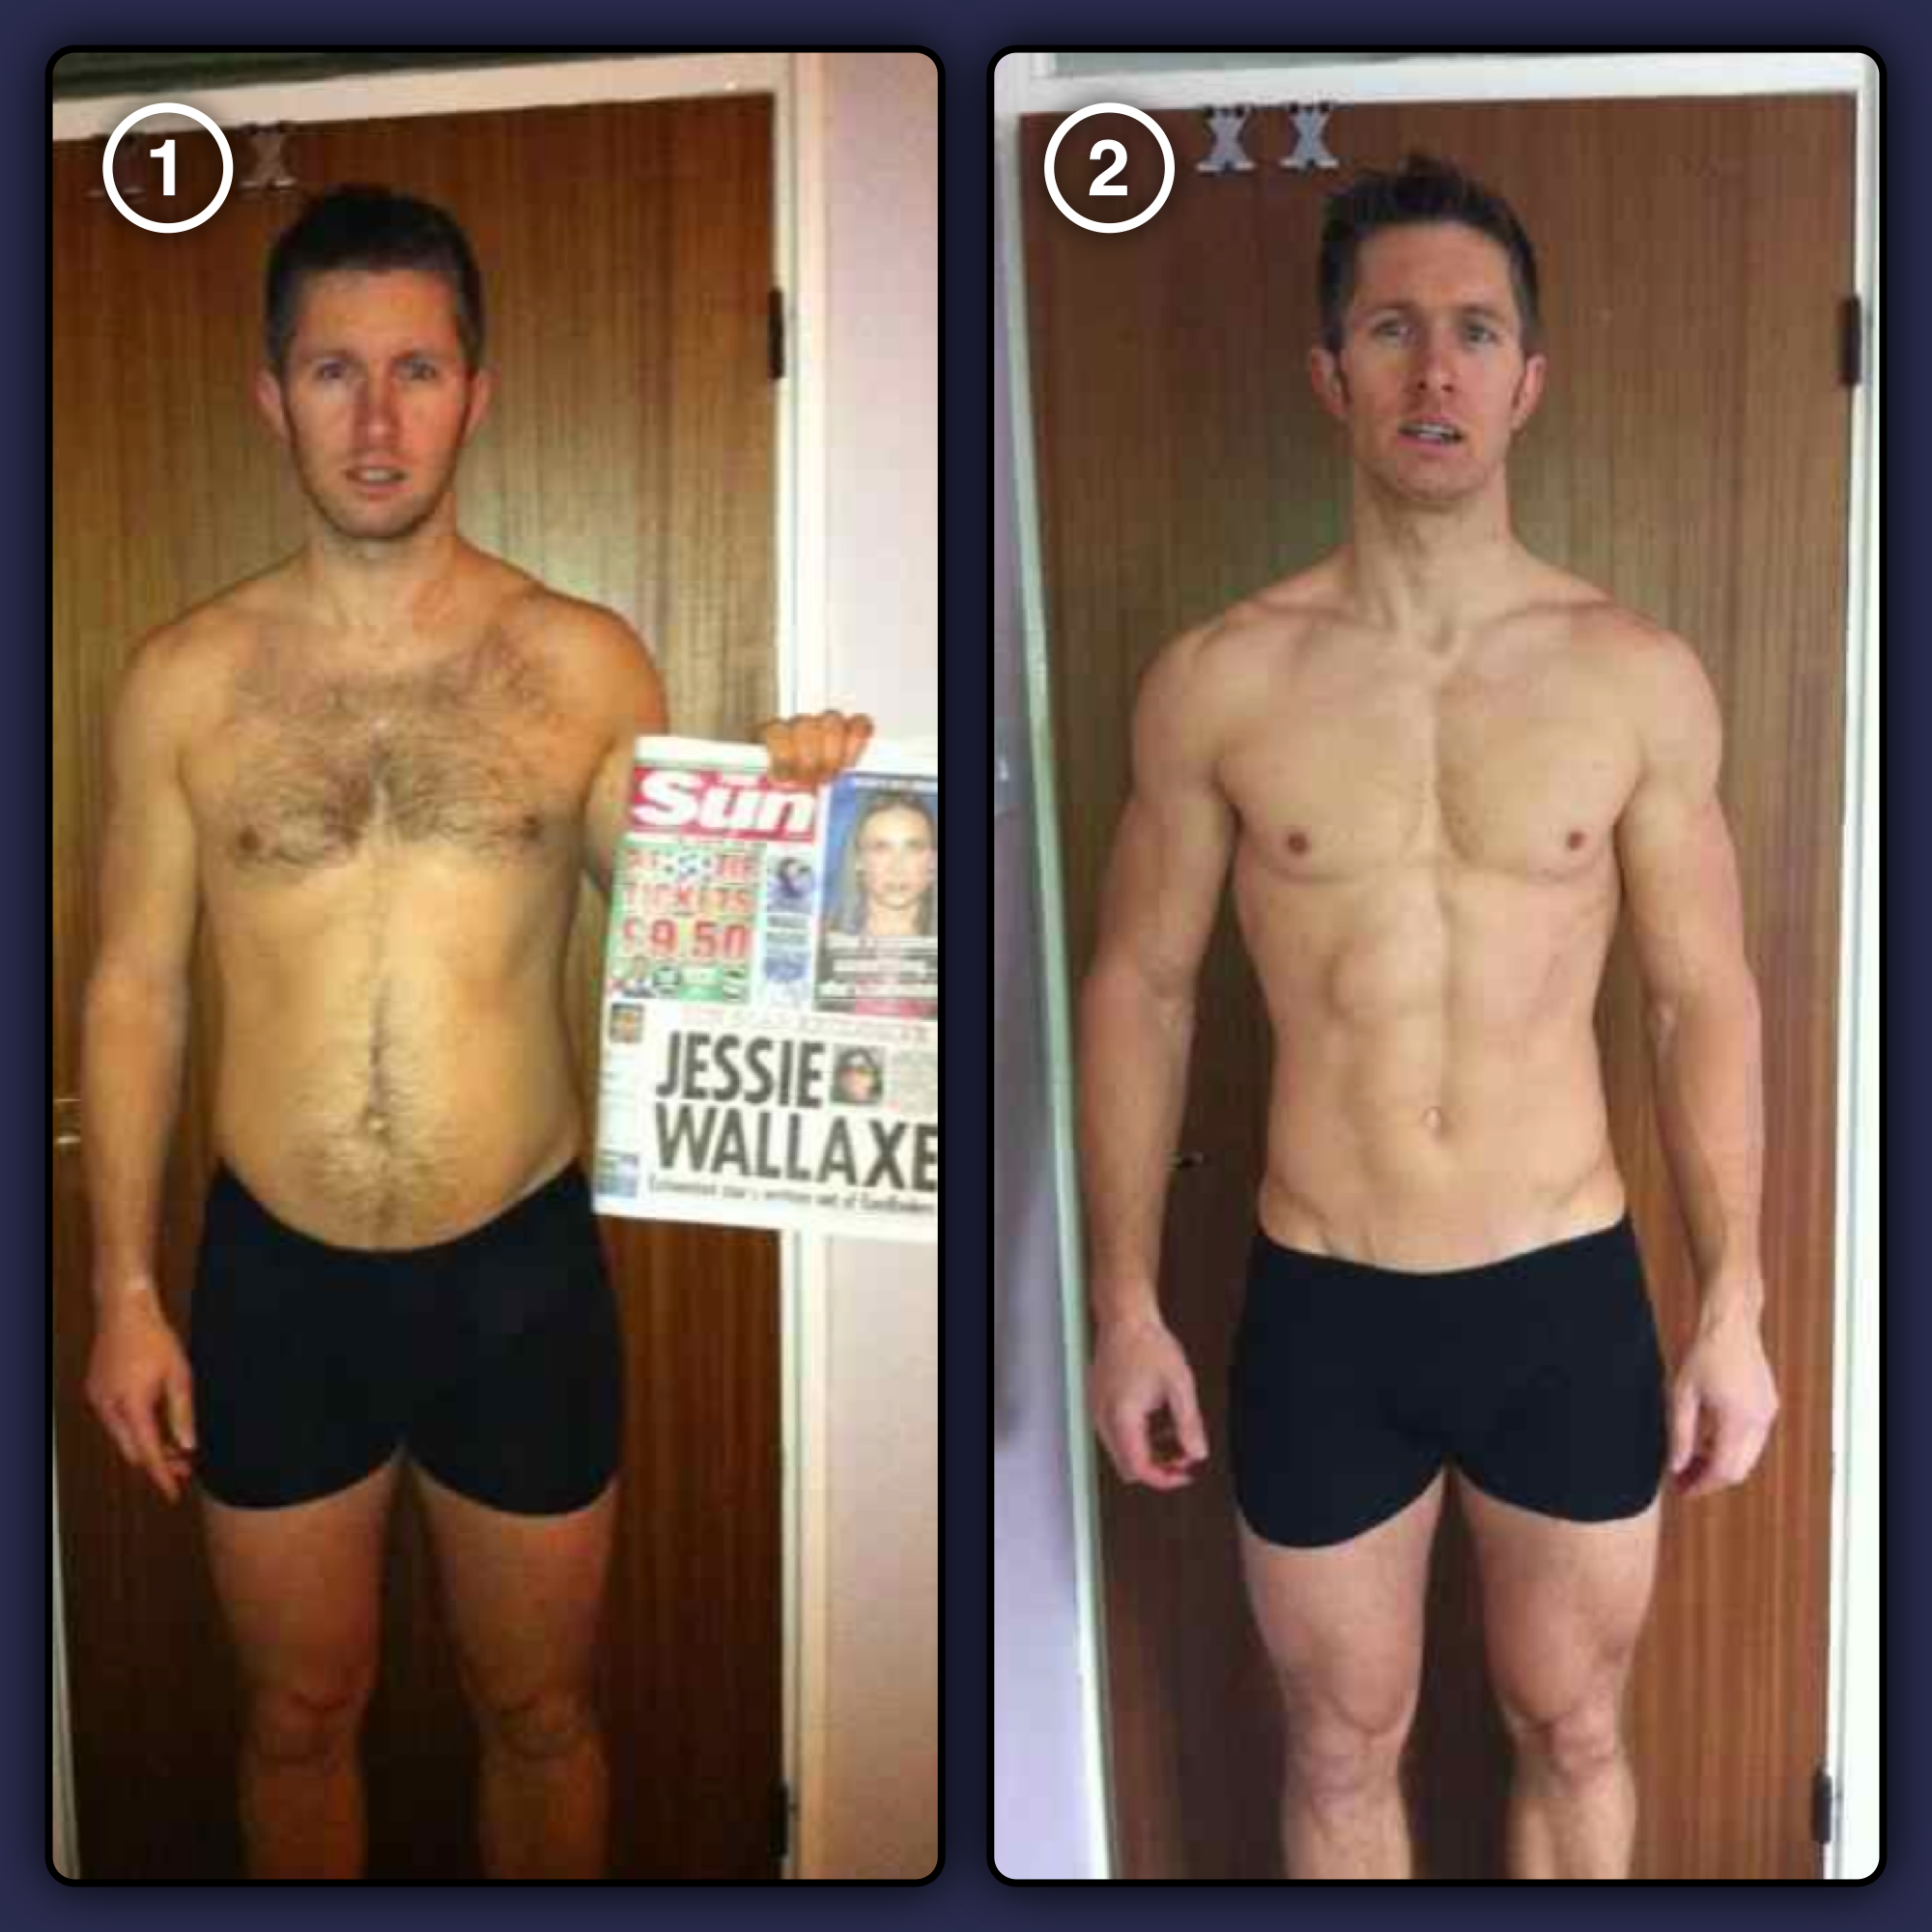 14 week quot fitnesstofollow quot body transformation sean lerwill